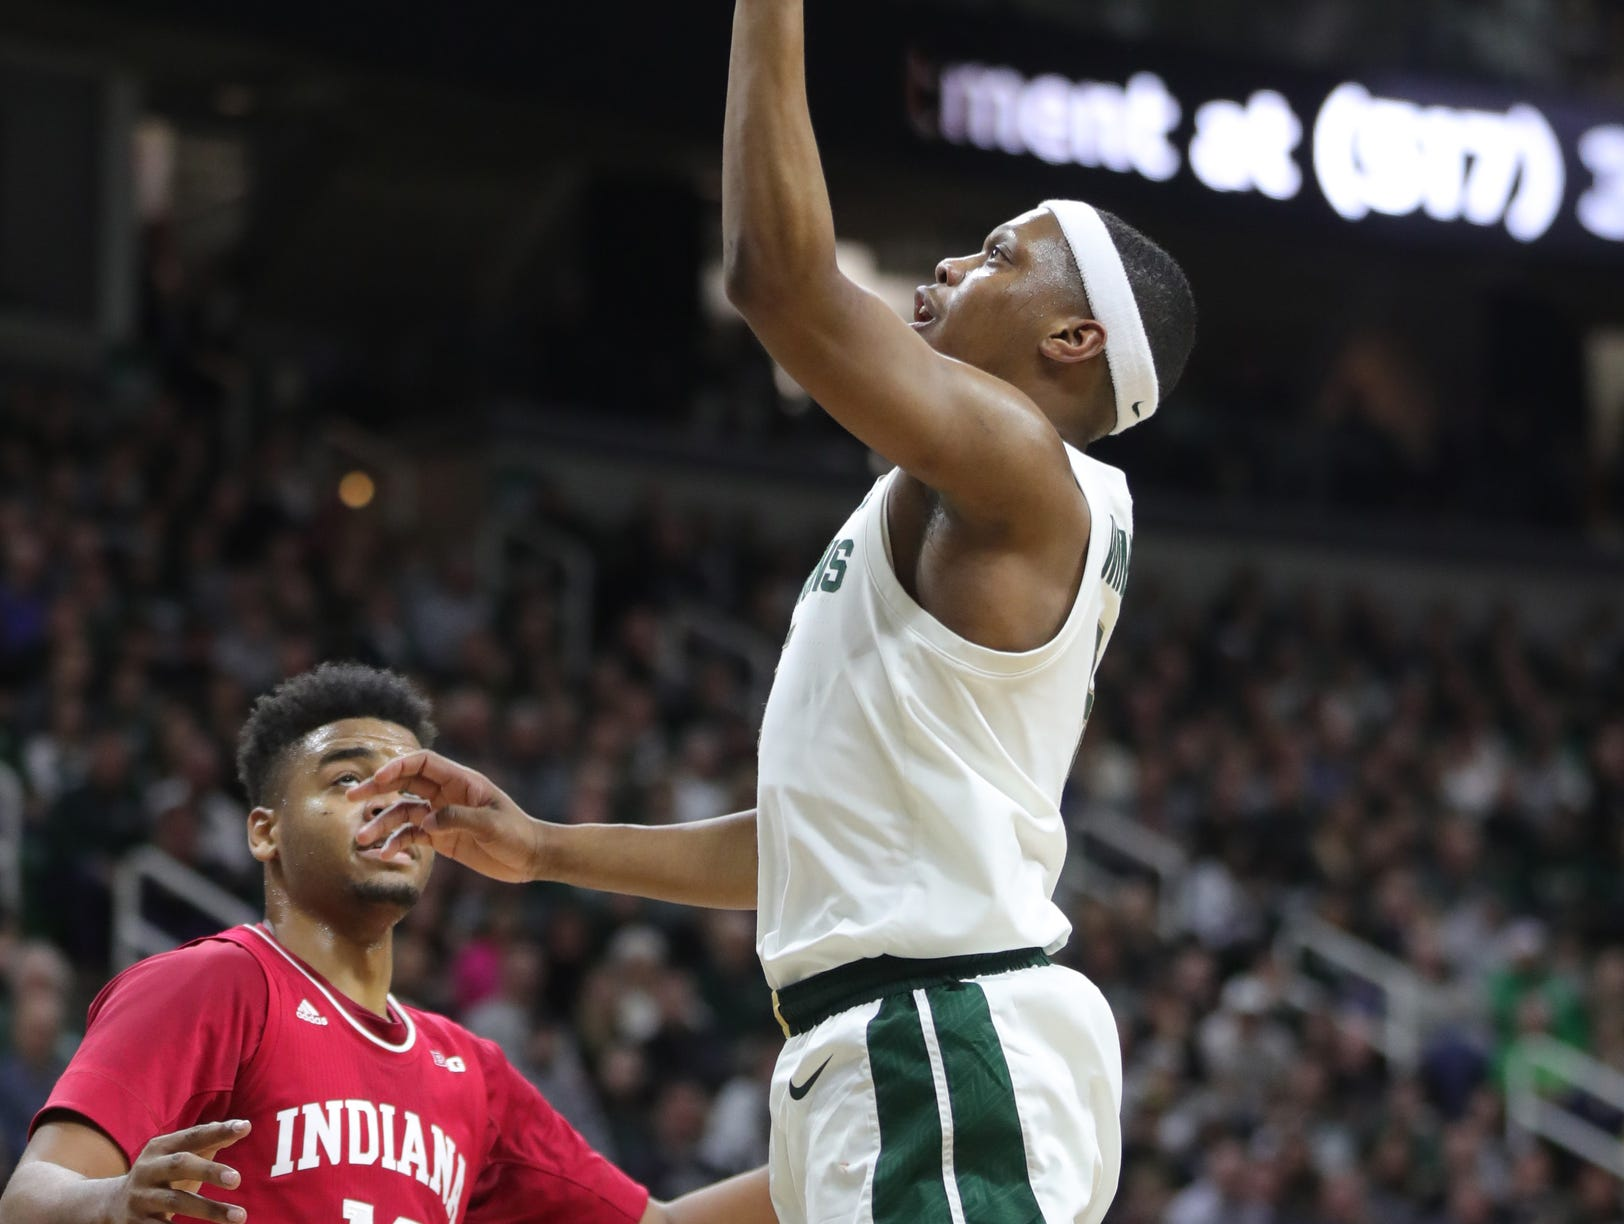 Michigan State guard Cassius Winston scores against Indiana forward Juwan Morgan during first half action Saturday, Feb. 2, 2019 at the Breslin Center in East Lansing, Mich.